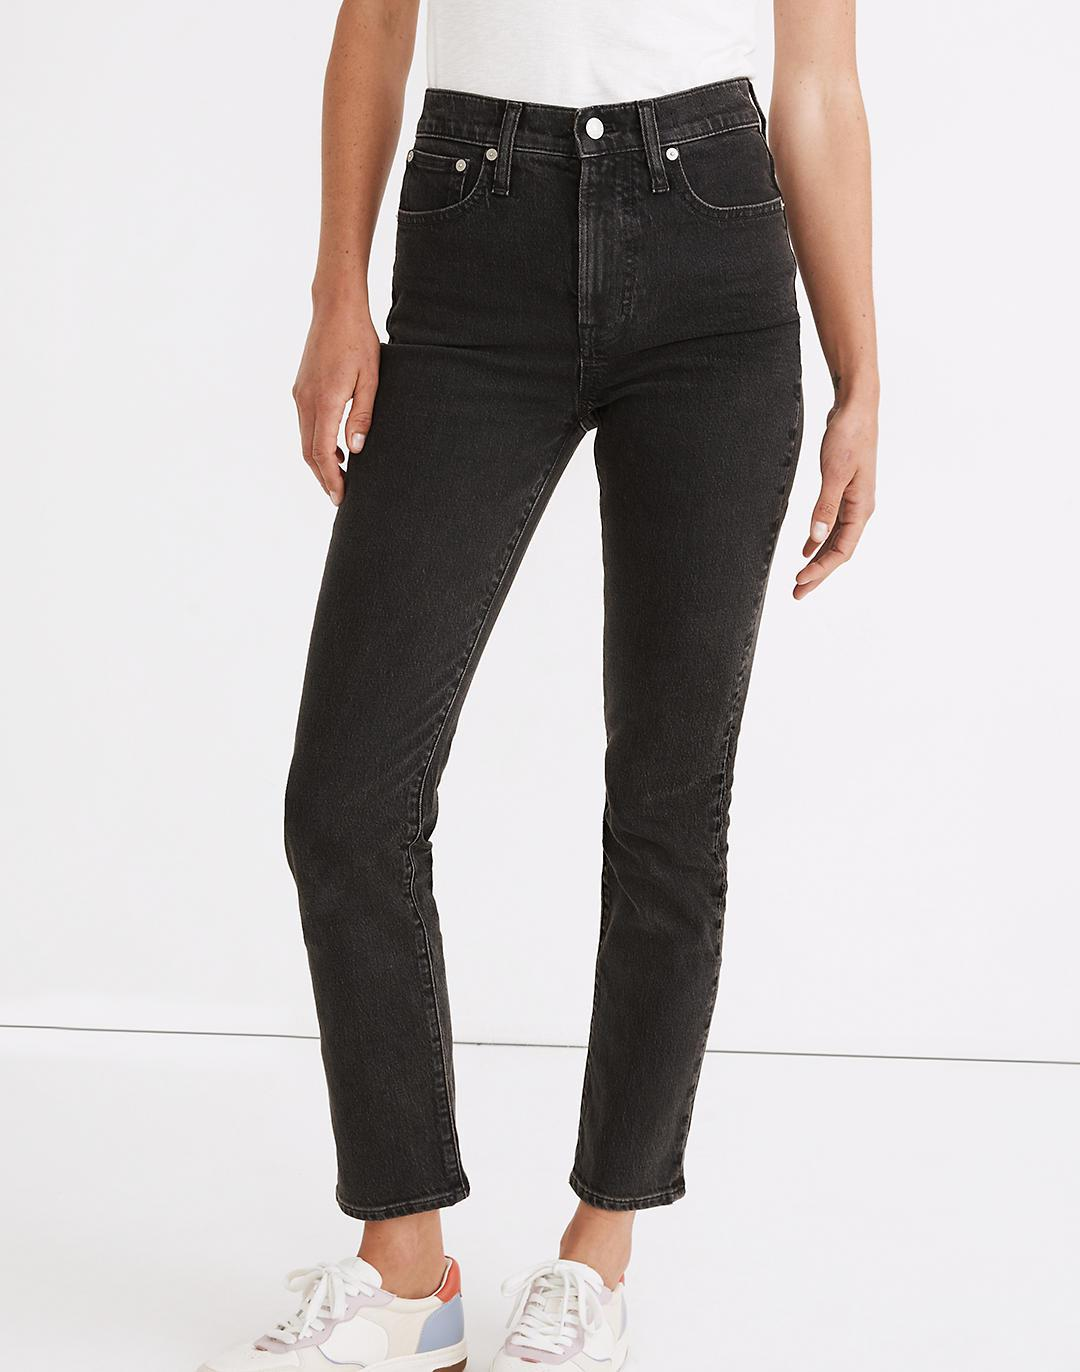 The Petite Perfect Vintage Jean in Lunar Wash 3